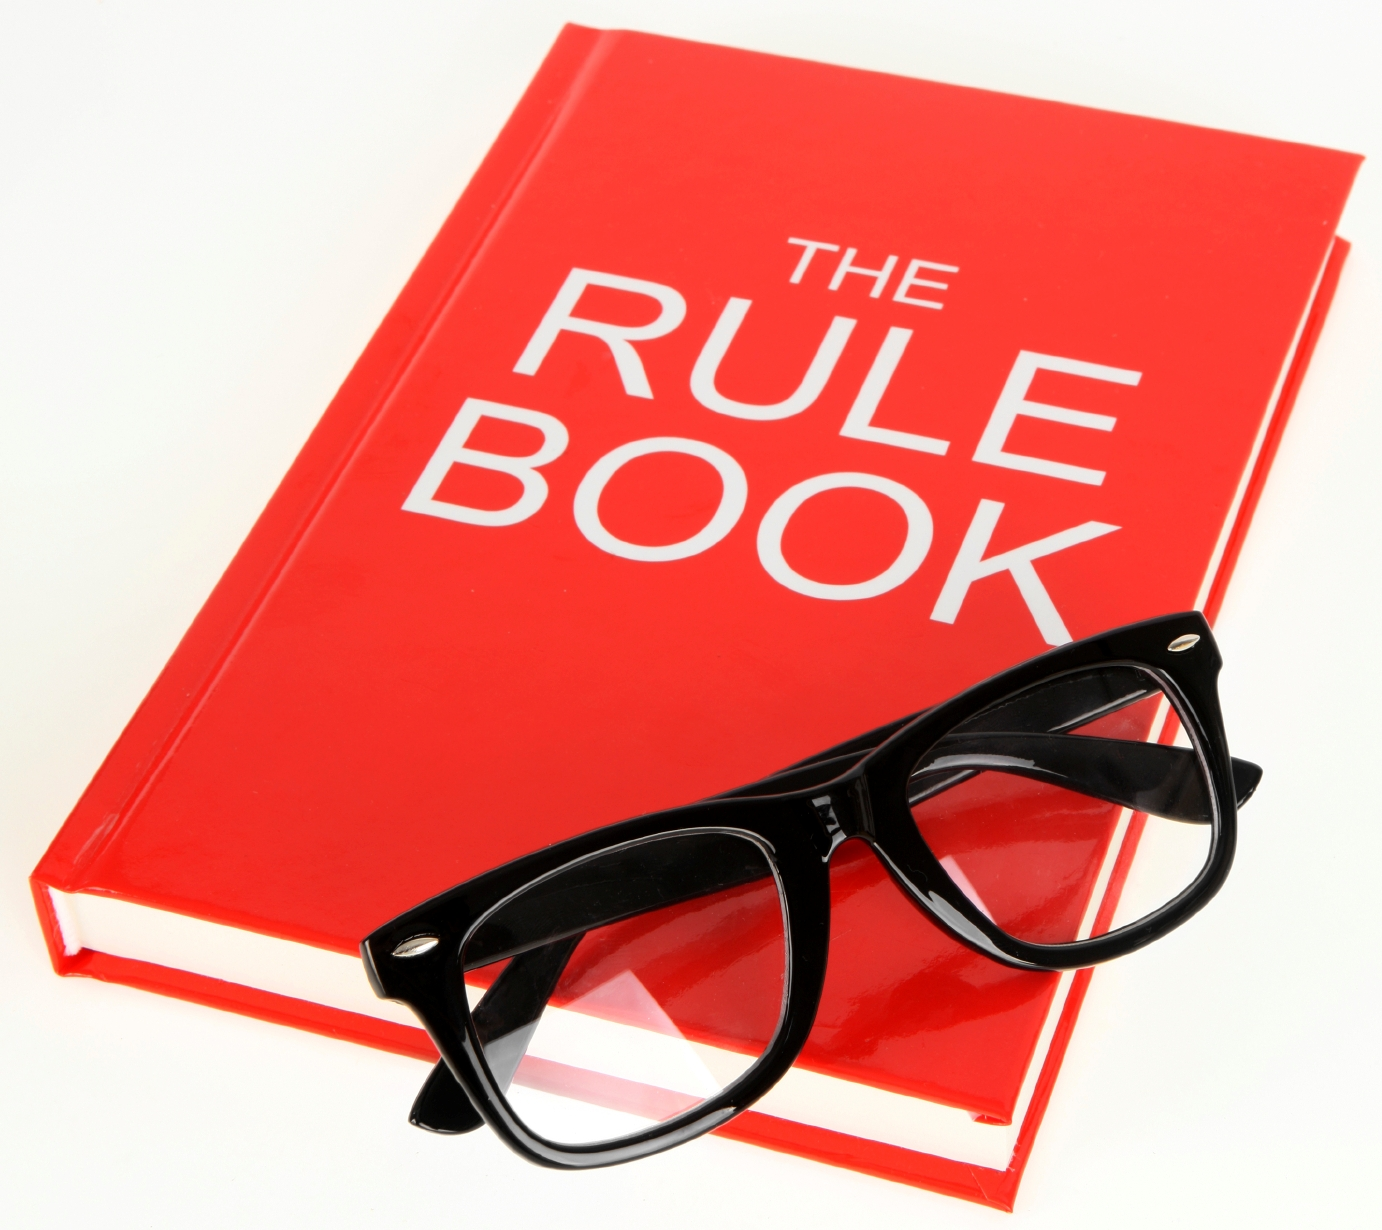 The Simplest Rule